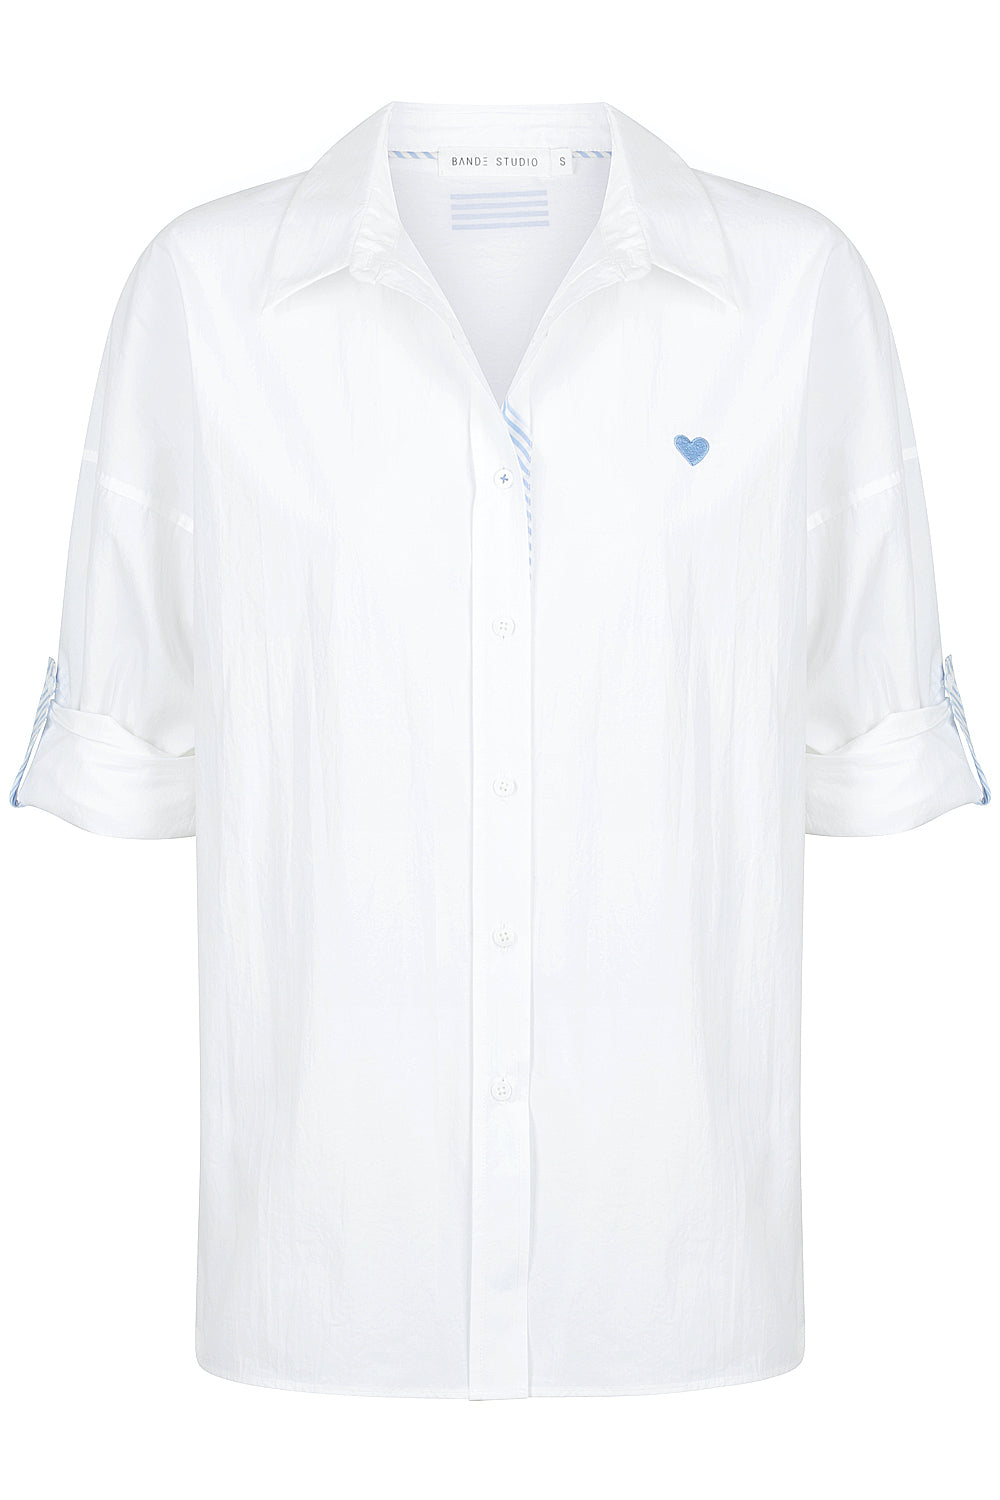 Iris Classic Oversize Shirt - white / blue stripes